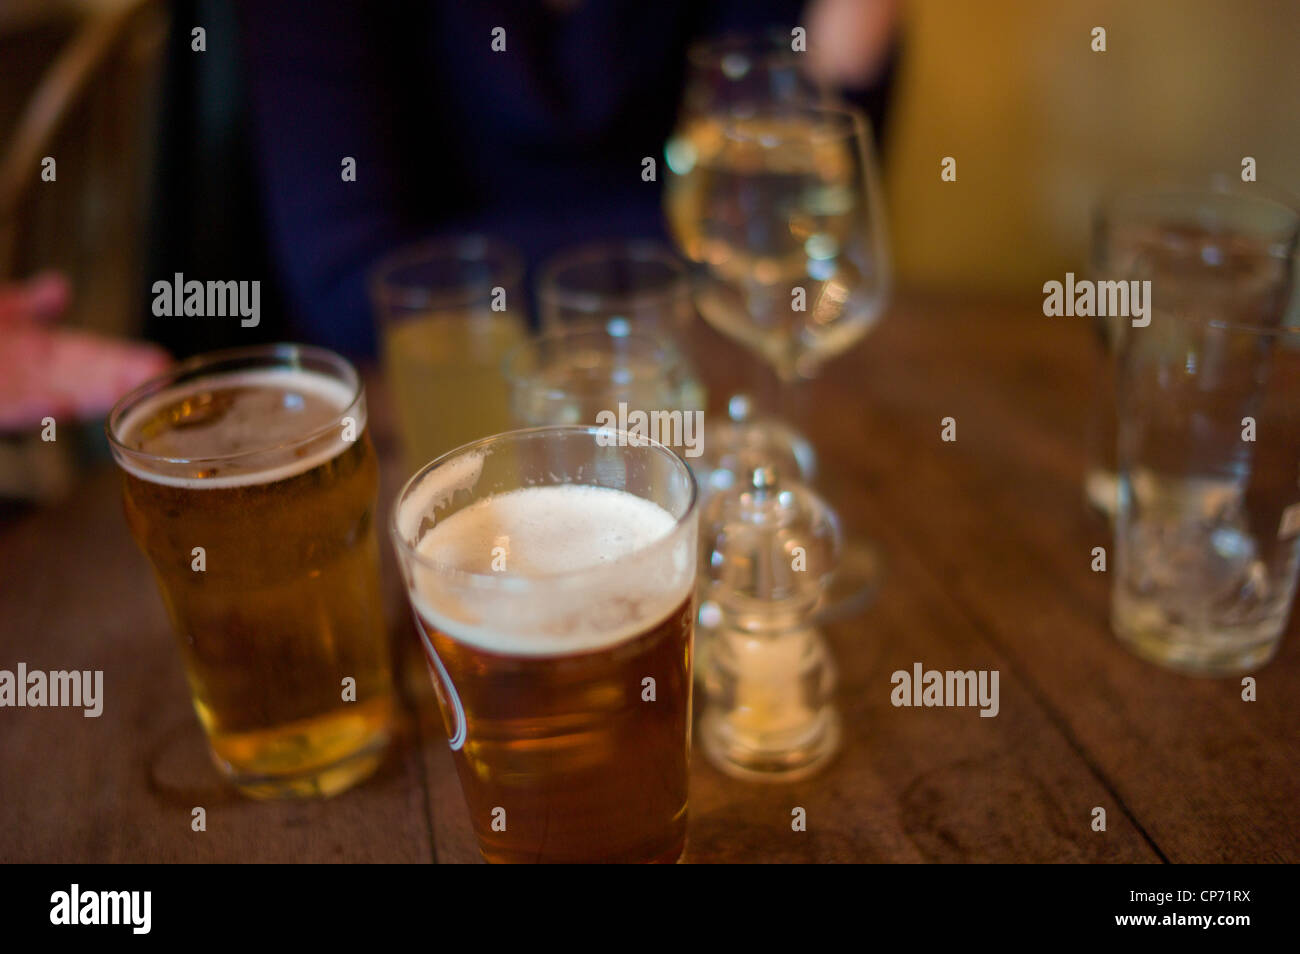 Table in a pub with drinks blurred - Stock Image